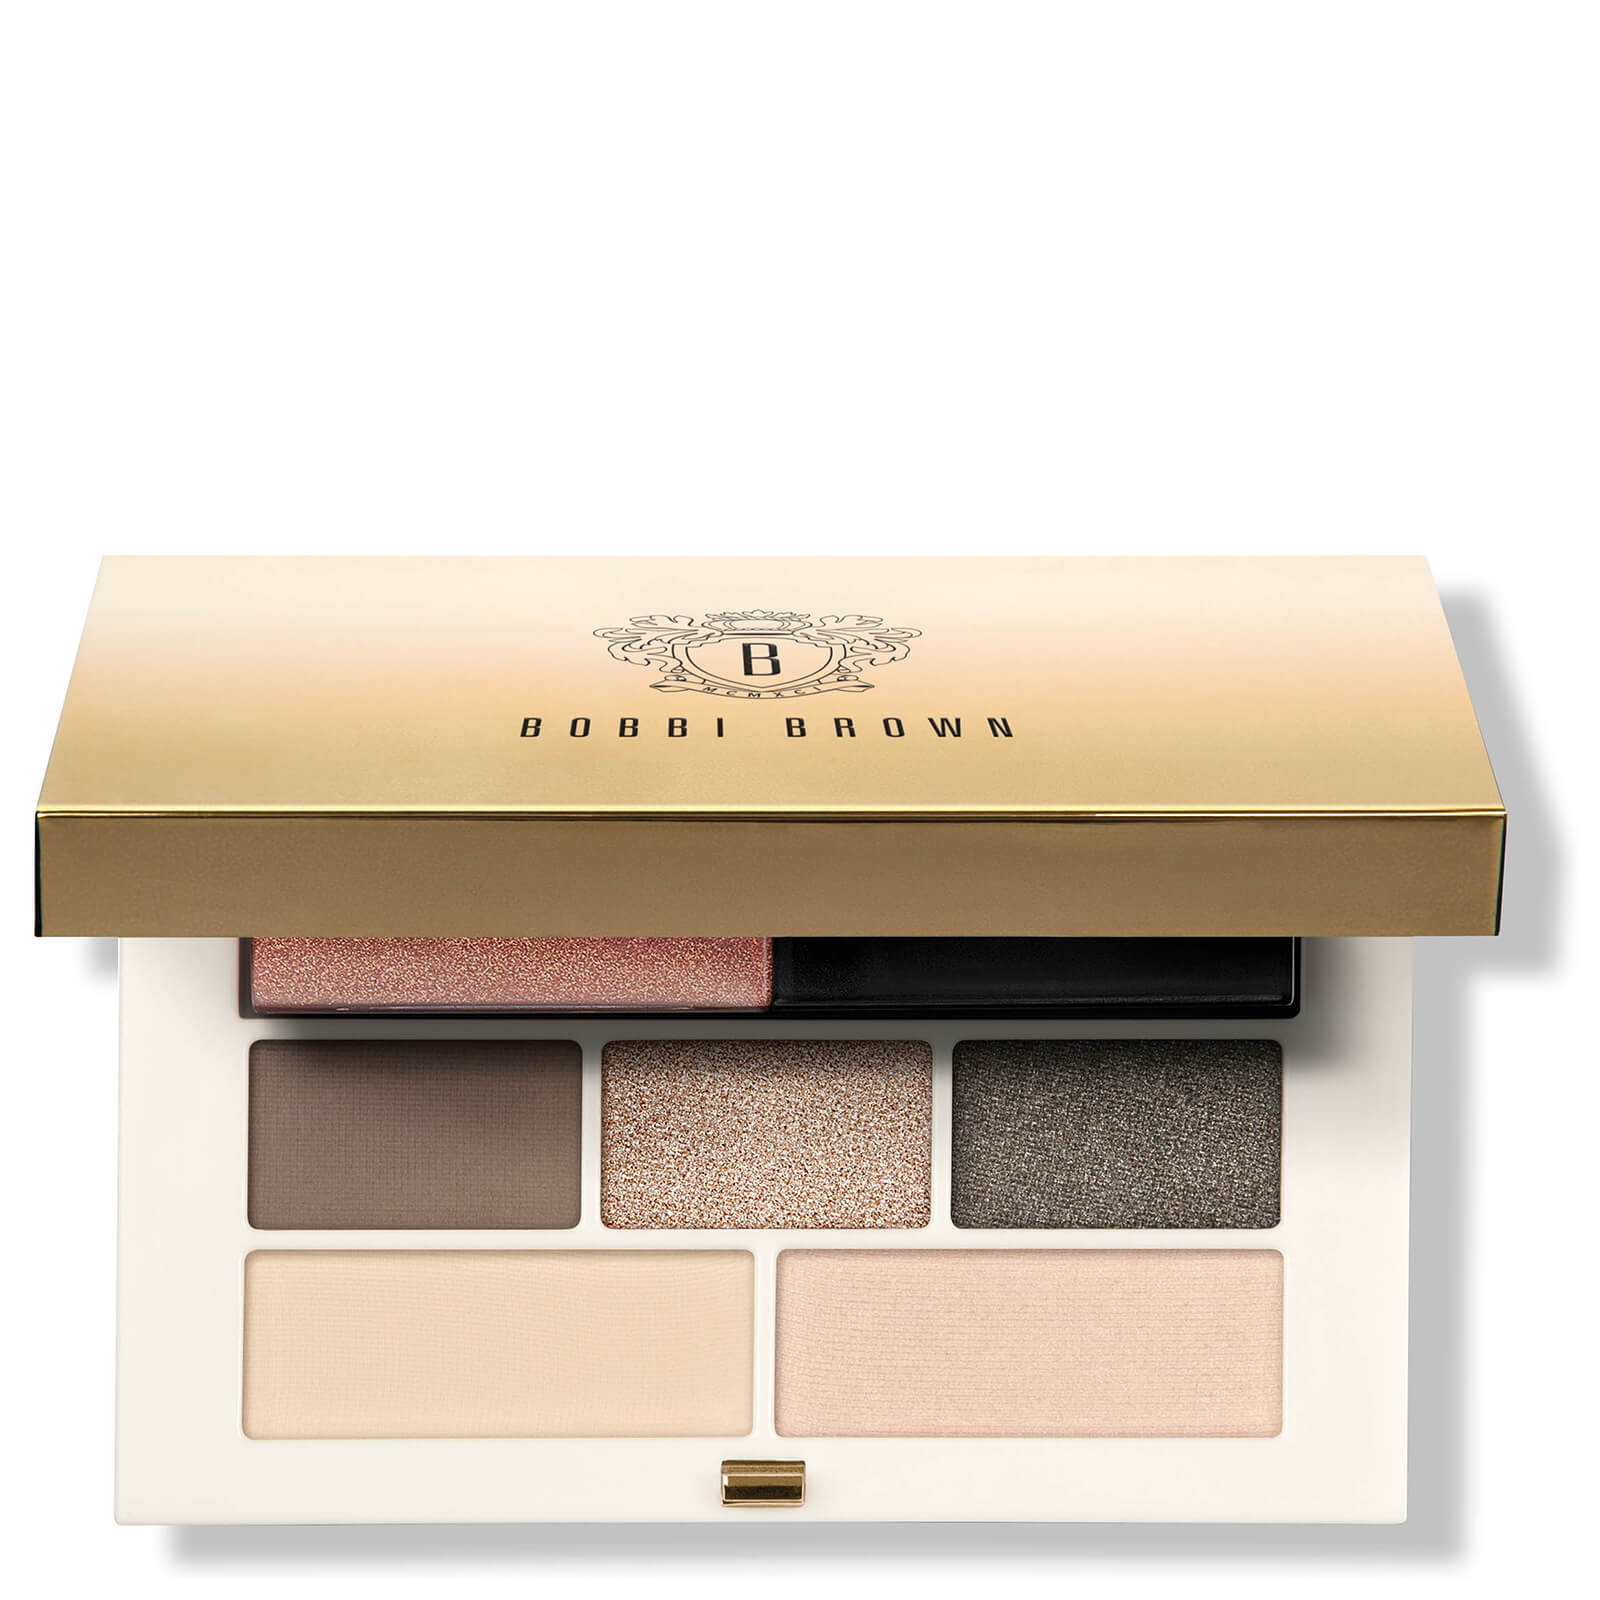 Bobbi Brown Party Glow Eye & Lip Palette